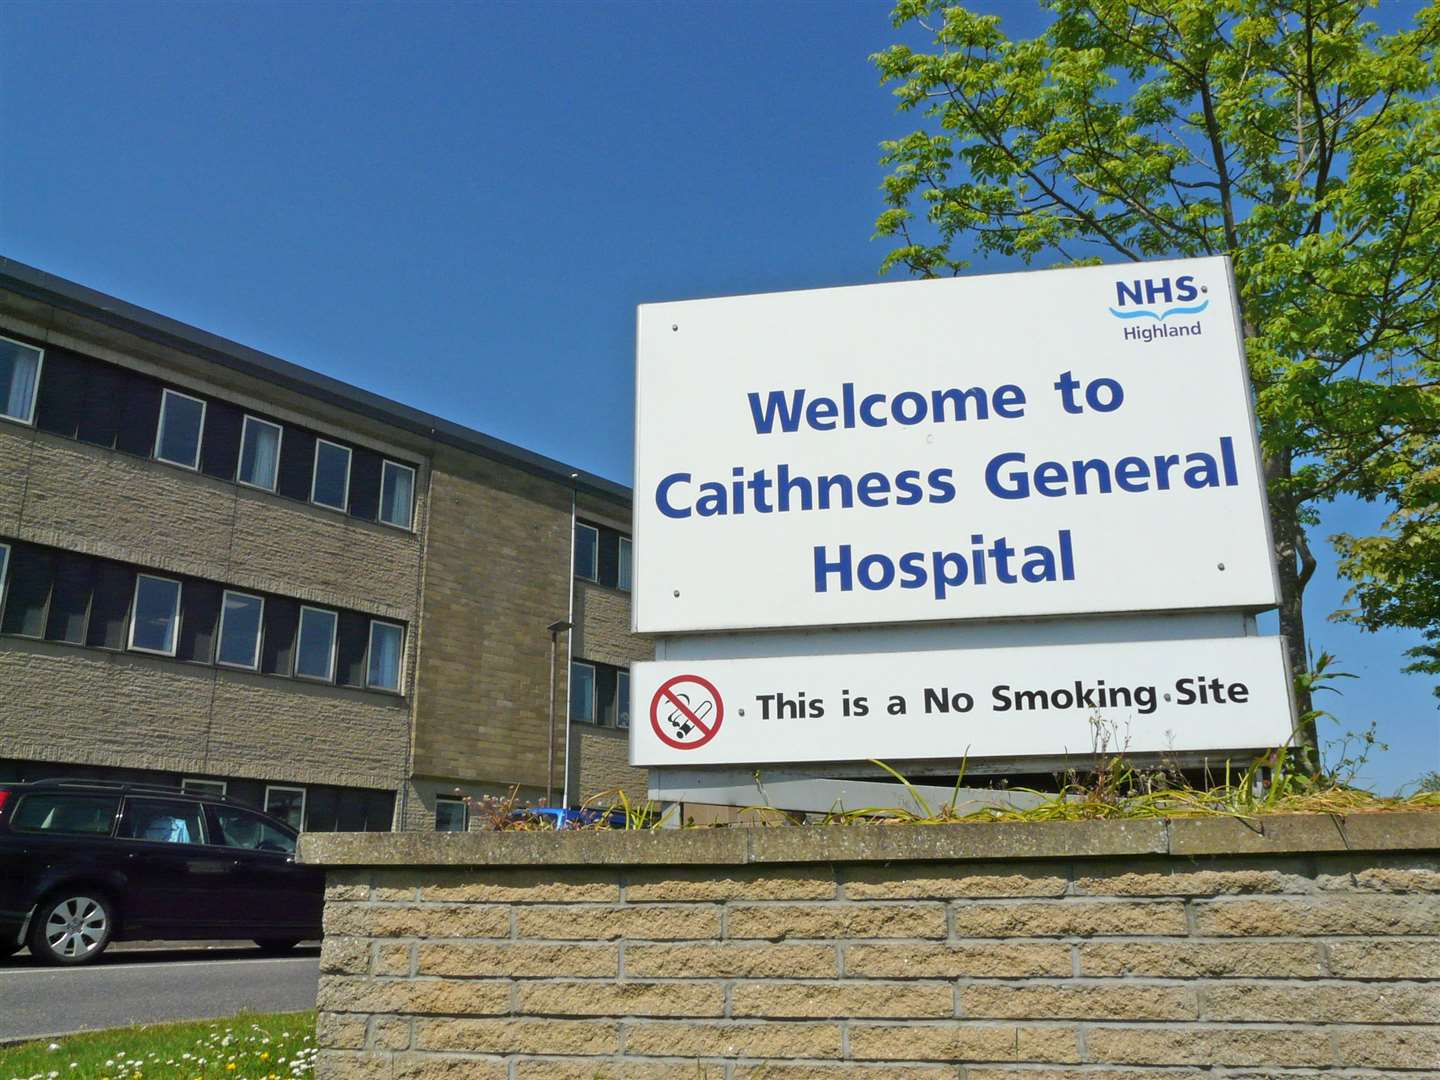 Under the plan investment will be made in Caithness General Hospital in Wick.